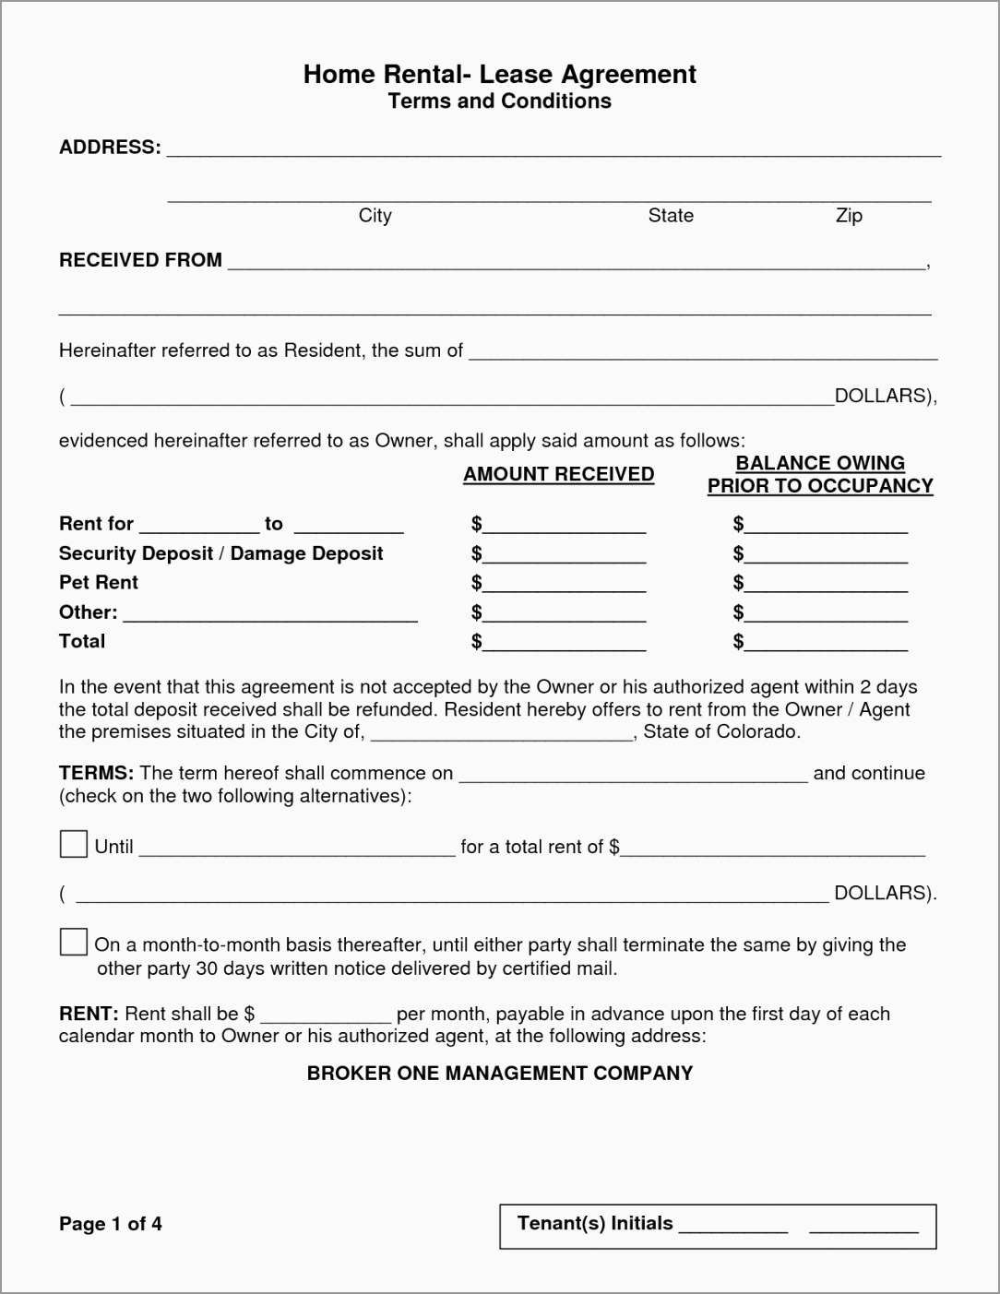 Free Vacation Rental Agreement Template Pretty Home Lease Agreement In Vacation Home Rental Agreem Rental Agreement Templates Lease Agreement Timeshare Rentals